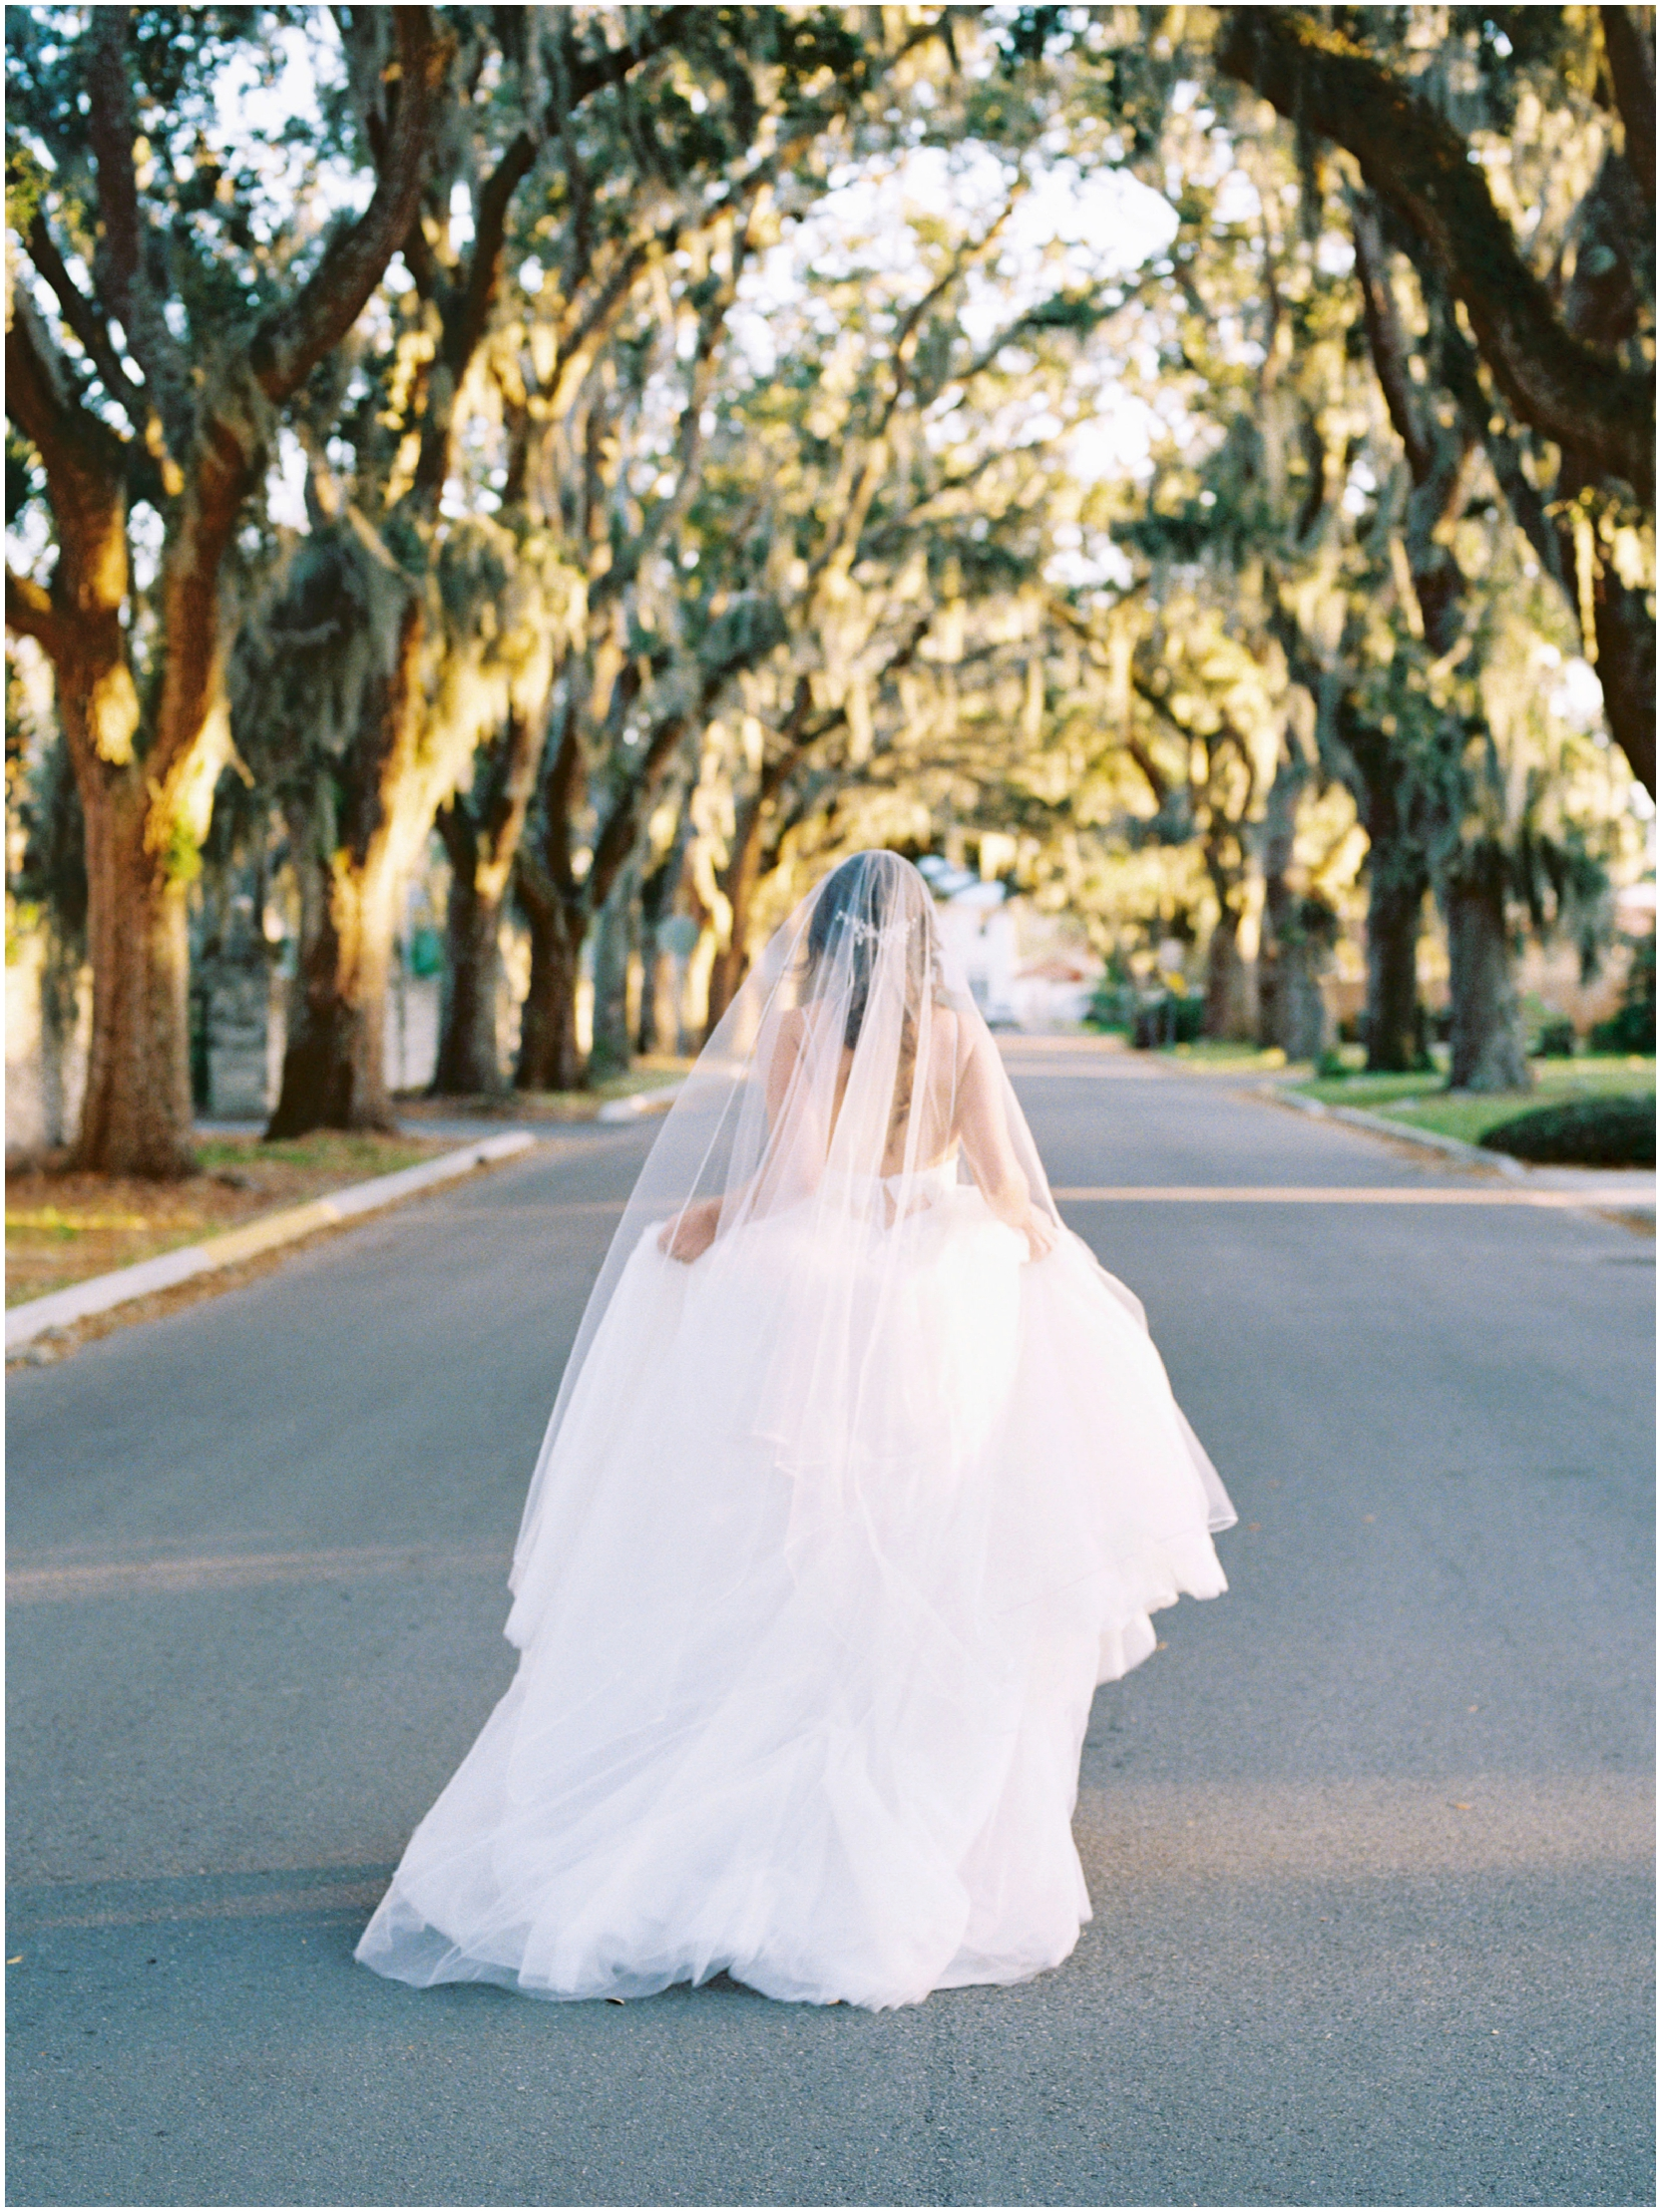 Lisa Silva Photography -Bridal Portrait Session in St. Augustine, Florida- Jacksonville and North East Florida Fine Art Film Photographer_0021.jpg